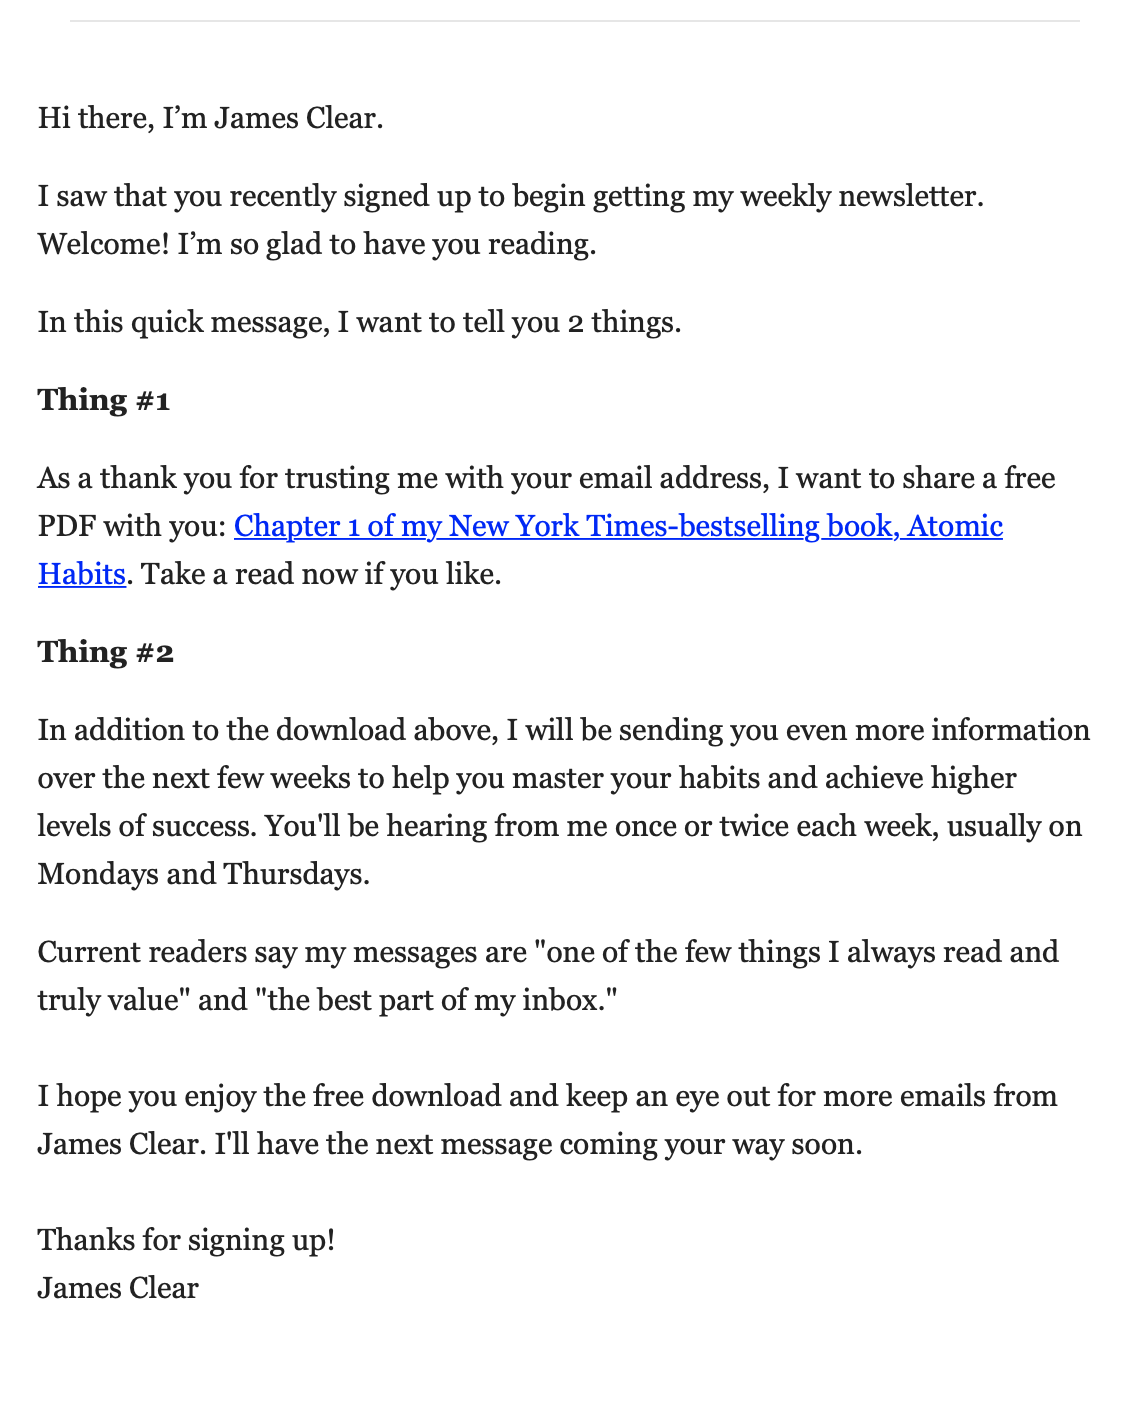 Onboarding email - James Clear welcome email